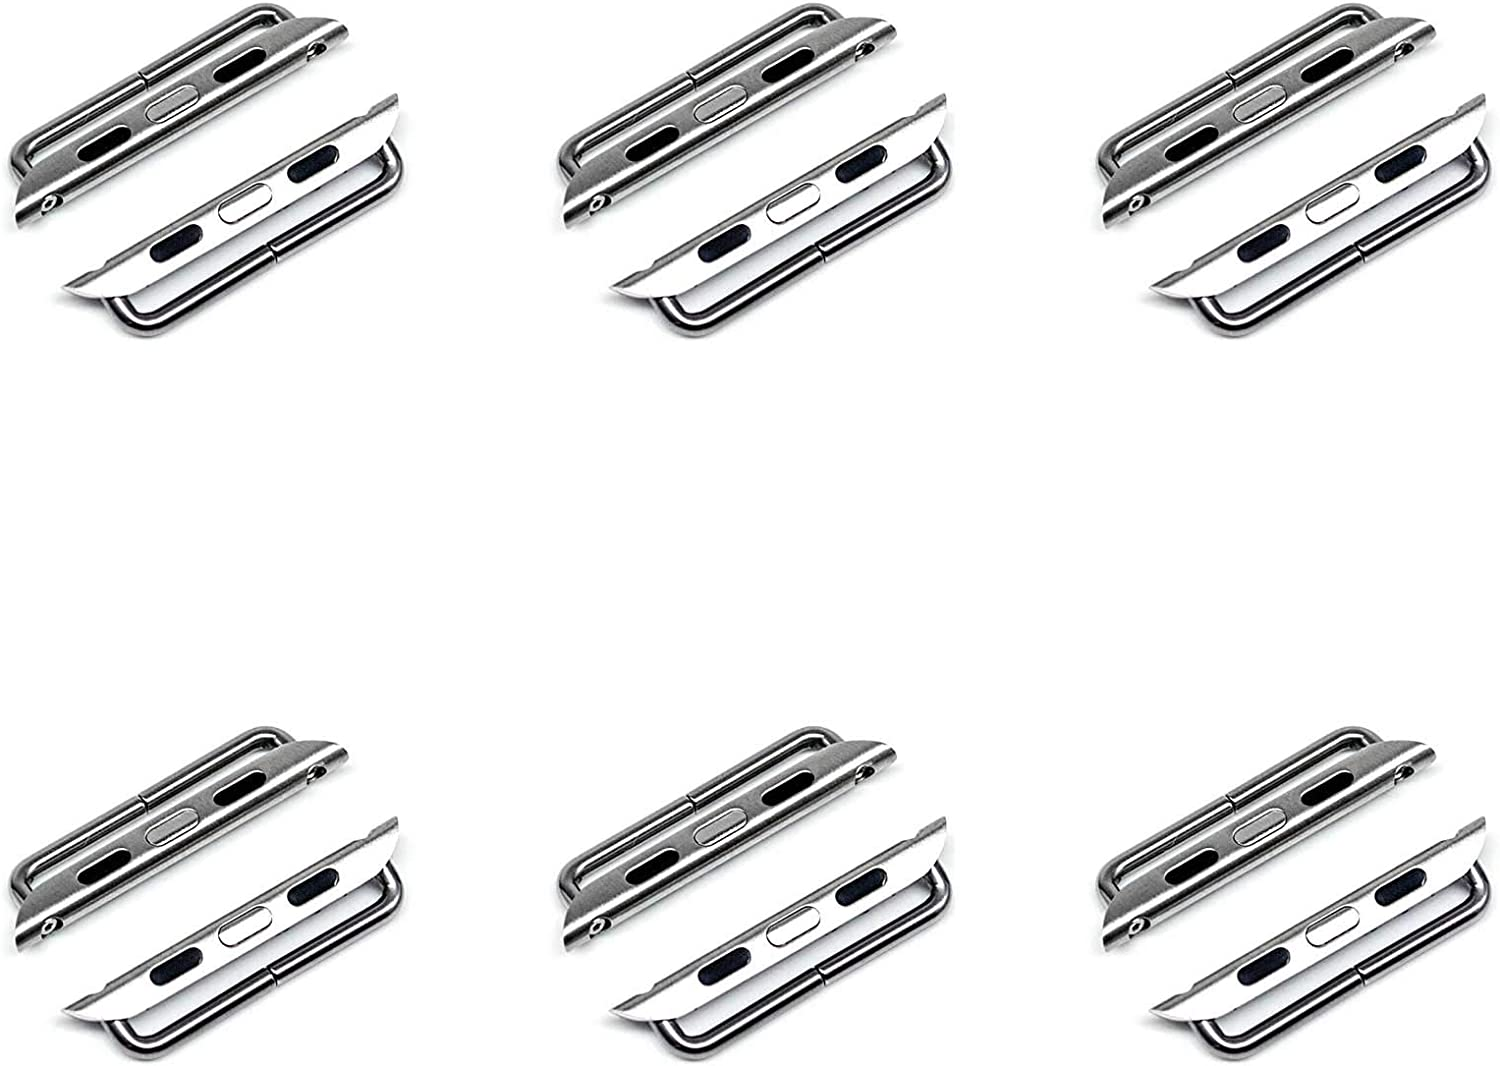 6 Pack Newon Stainless Steel Adapter Compatible with Apple Watch Band, for iWatch 38mm 40mm Sport Series SE/6/5/4/3/2/1 Metal Clasp Hardware Connector Lug - Silver 38/40